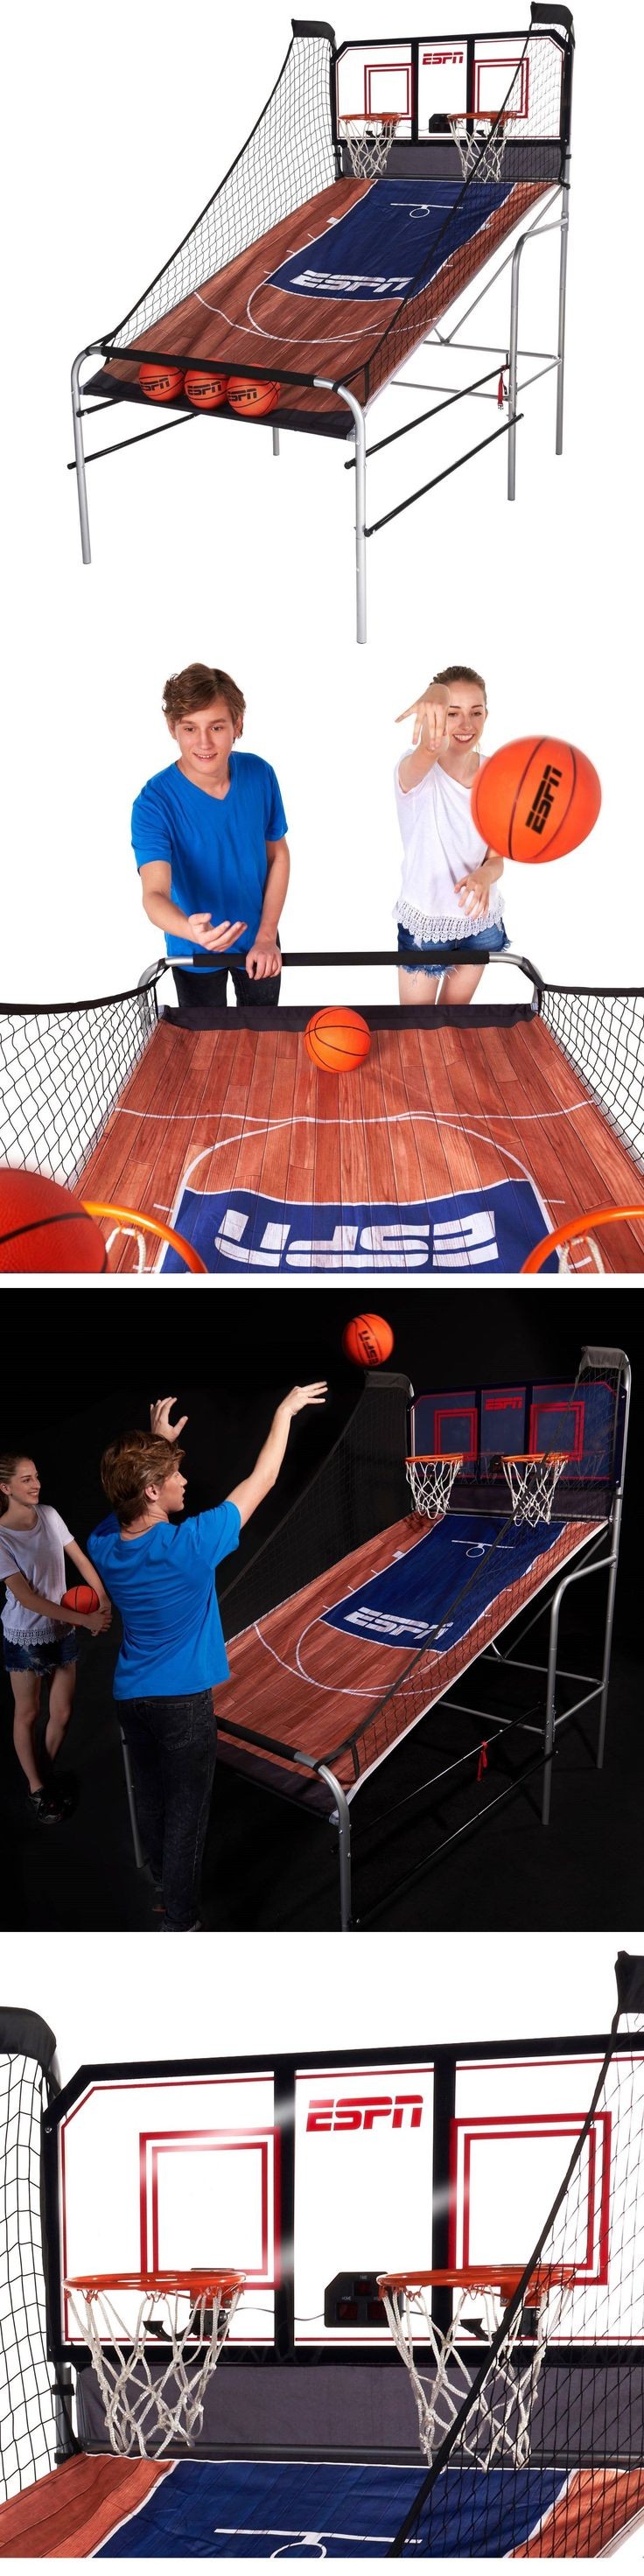 Other Indoor Games 36278: Espn Basketball Game Indoor Electronic Arcade Sports Kids 2 Player Heavy Duty BUY IT NOW ONLY: $149.99